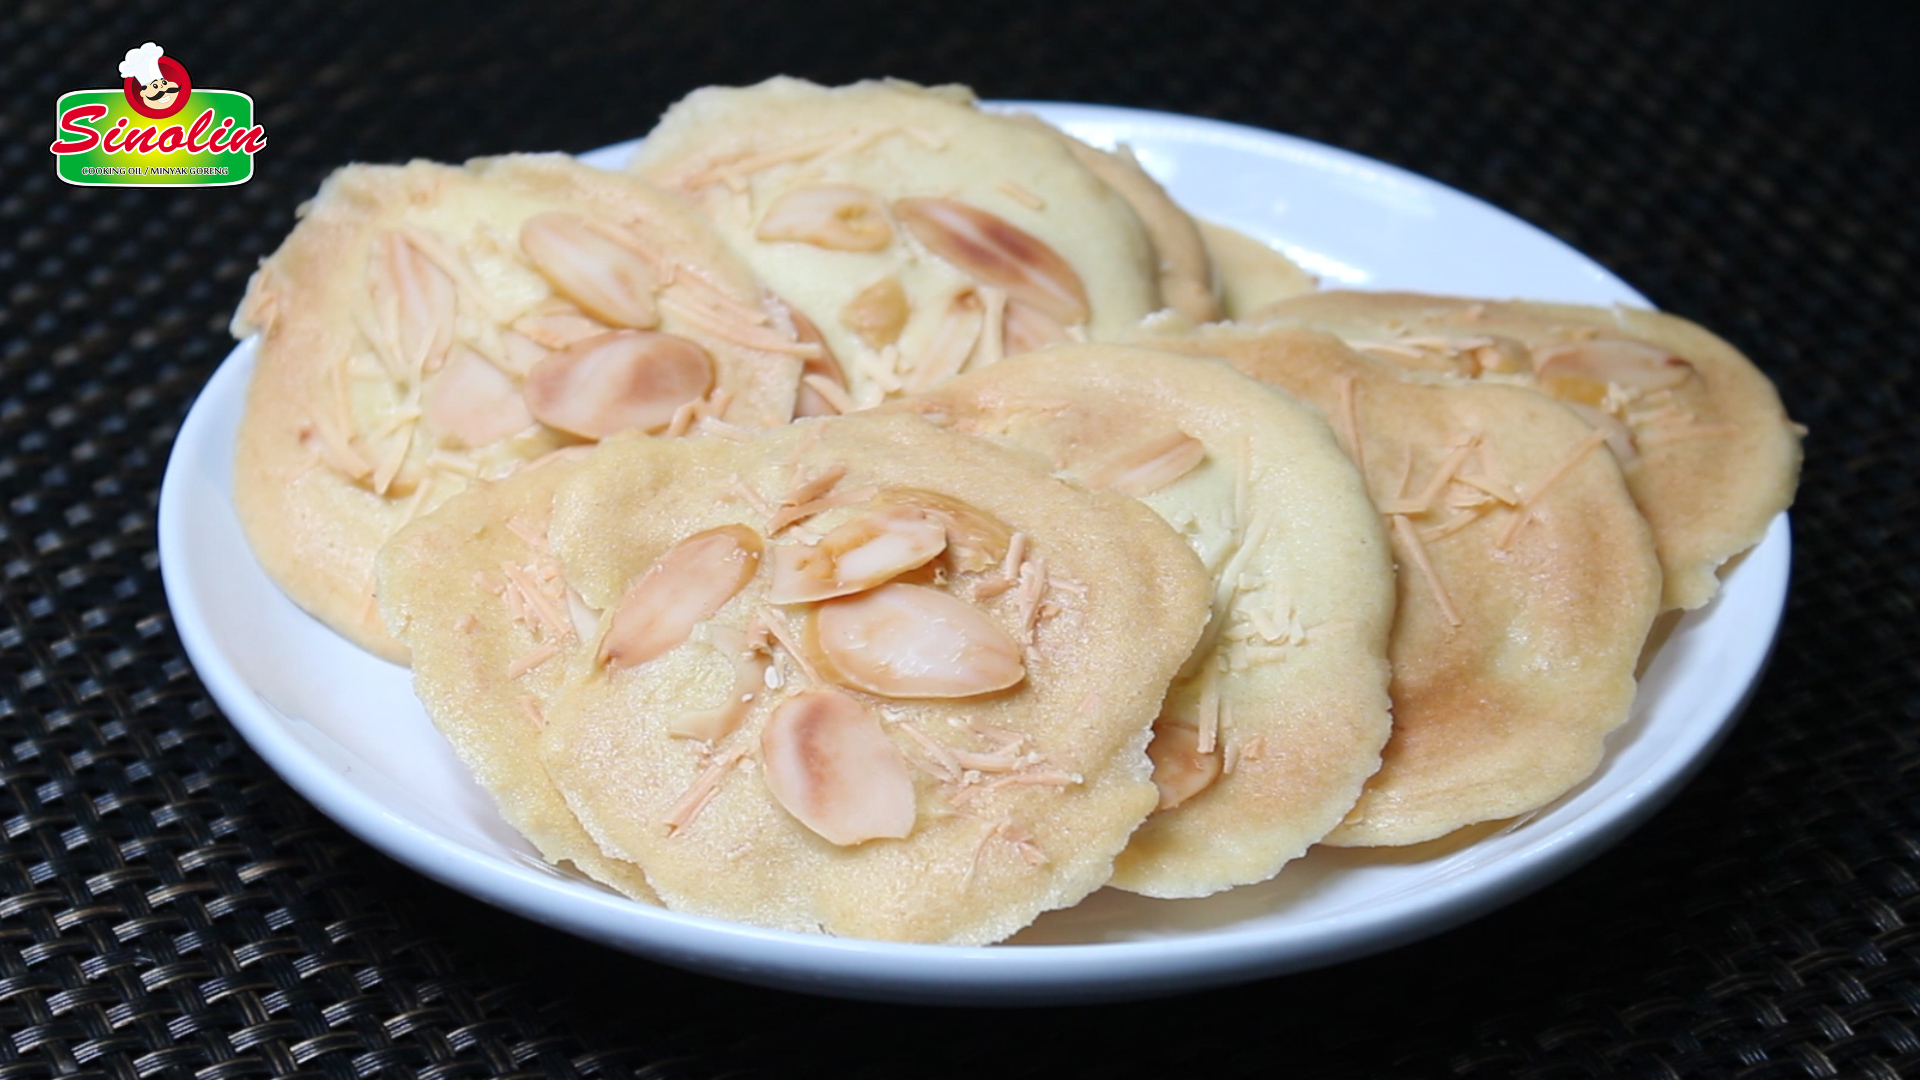 Recipe Crispy Almond Cheese Tuiles by Dapur Sinolin